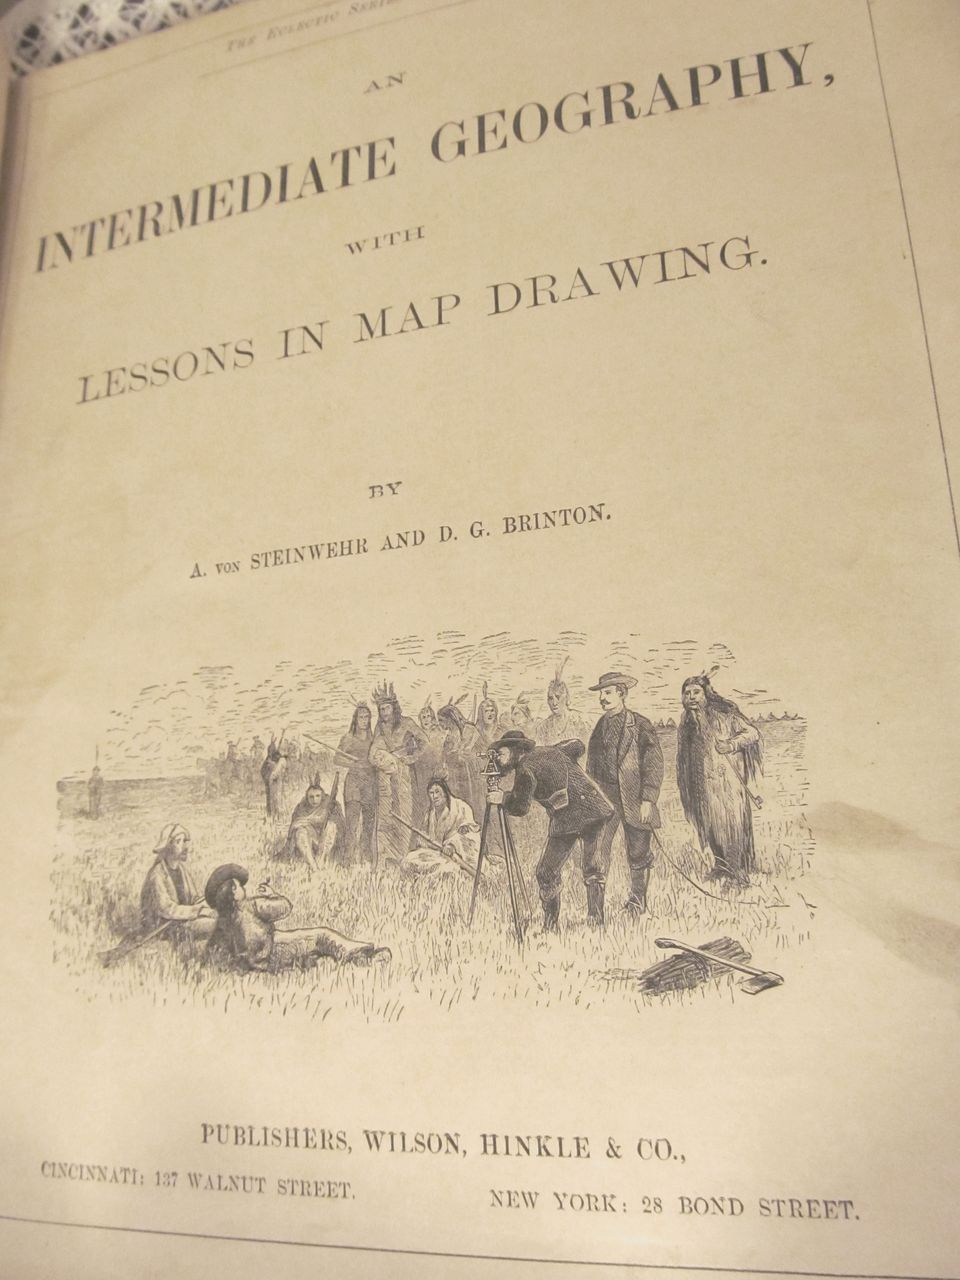 1870 Eclectic Series Intermediate Geography #2 with Lessons of Map Drawing, by A Von Steinwehr and D G Brinton, Publ Wilson Hinkle & Co